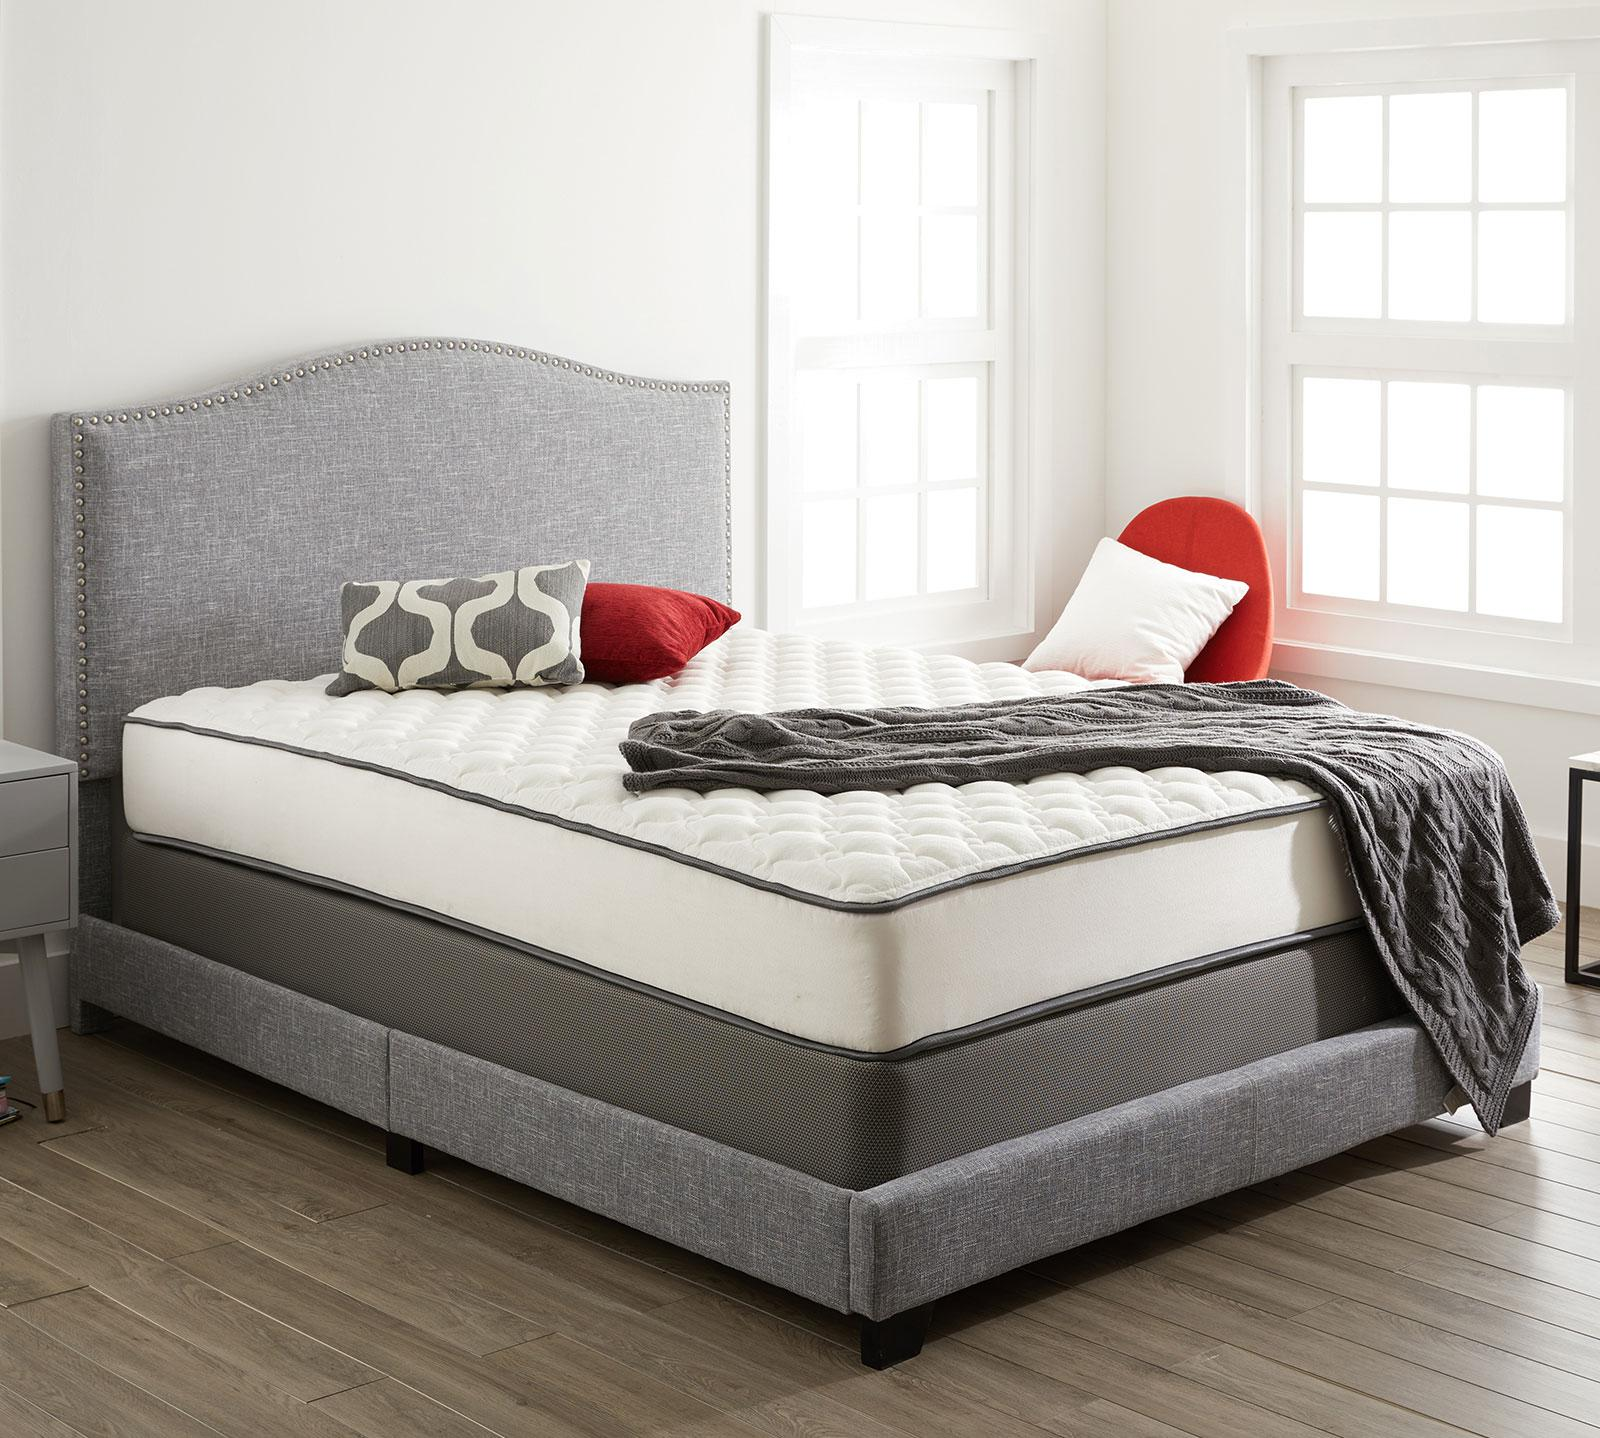 Mattress Firm Cincinnati Greenwood 9 5